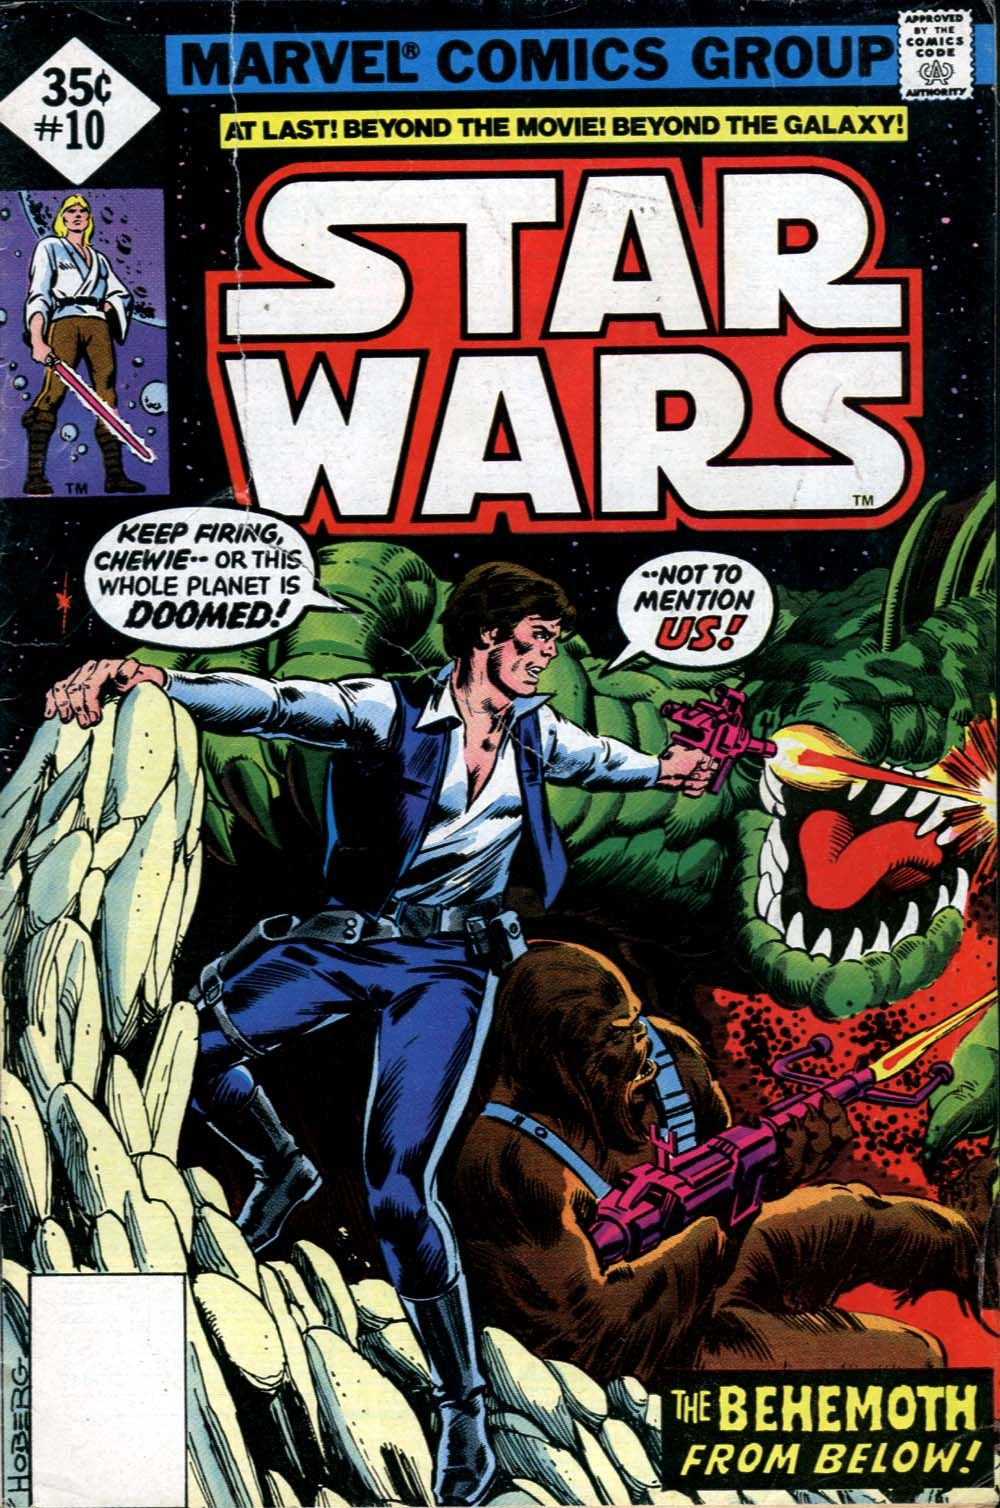 Star Wars #10, one of my very first comics